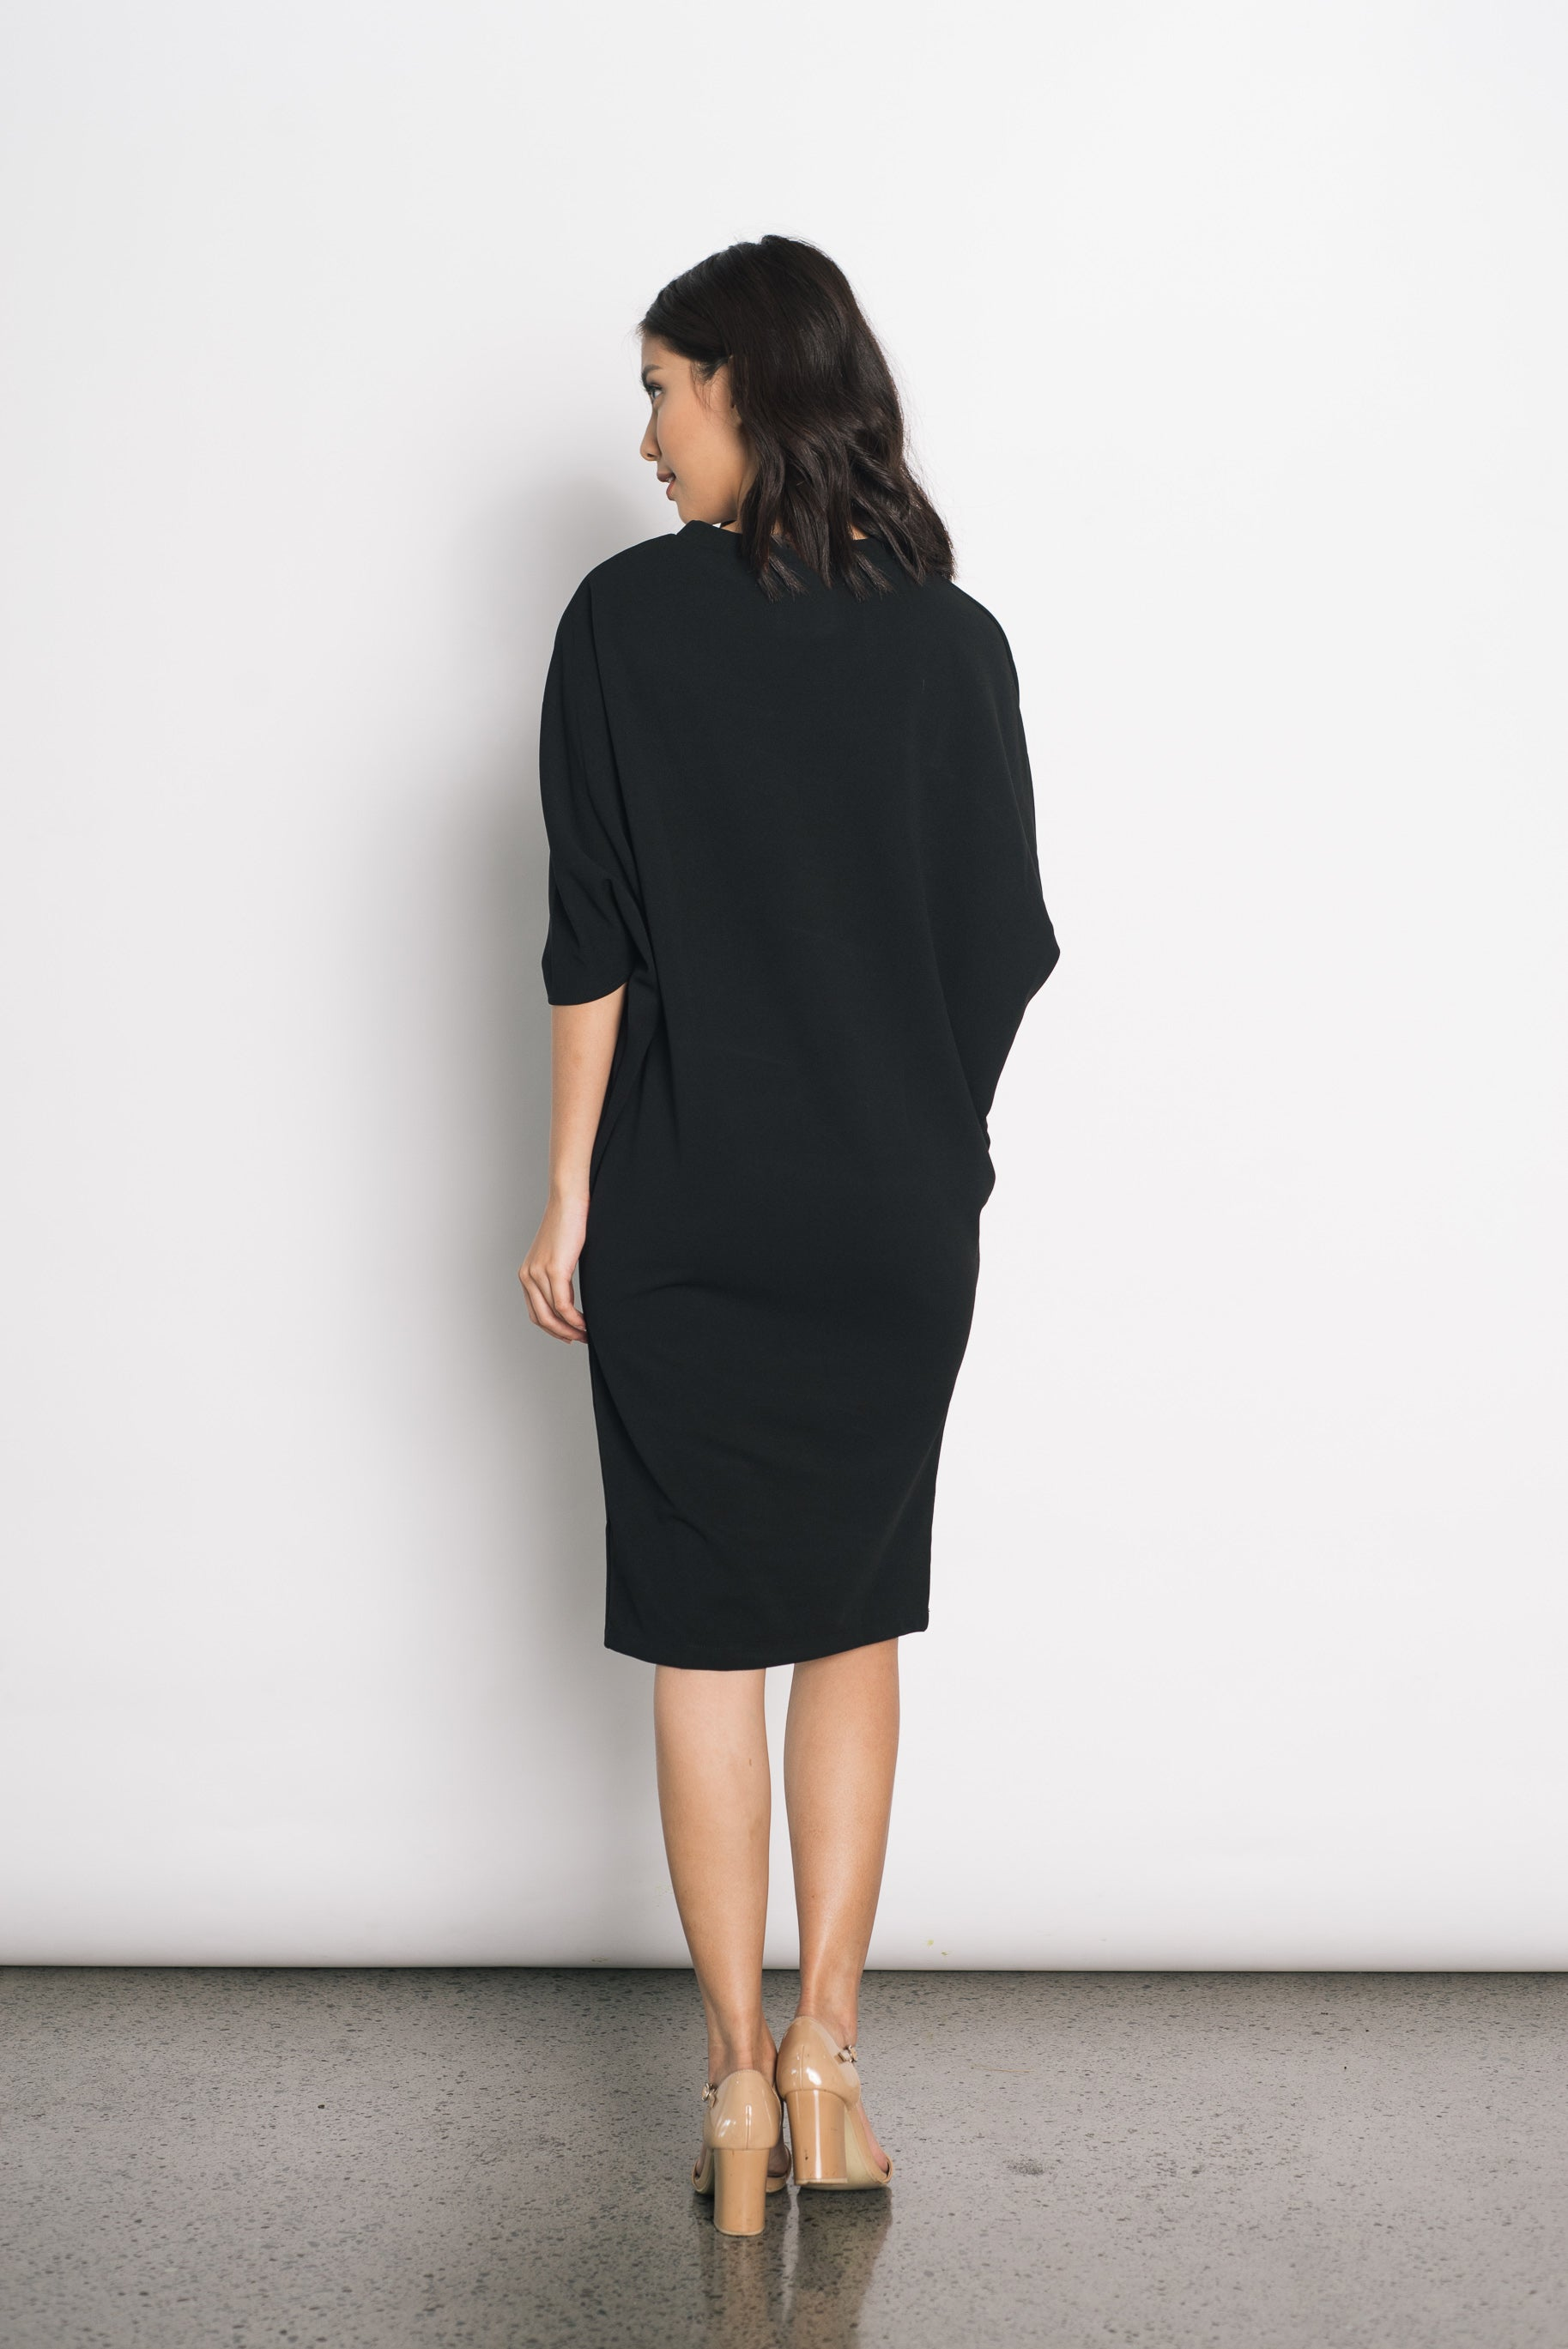 Dora Dress in Black